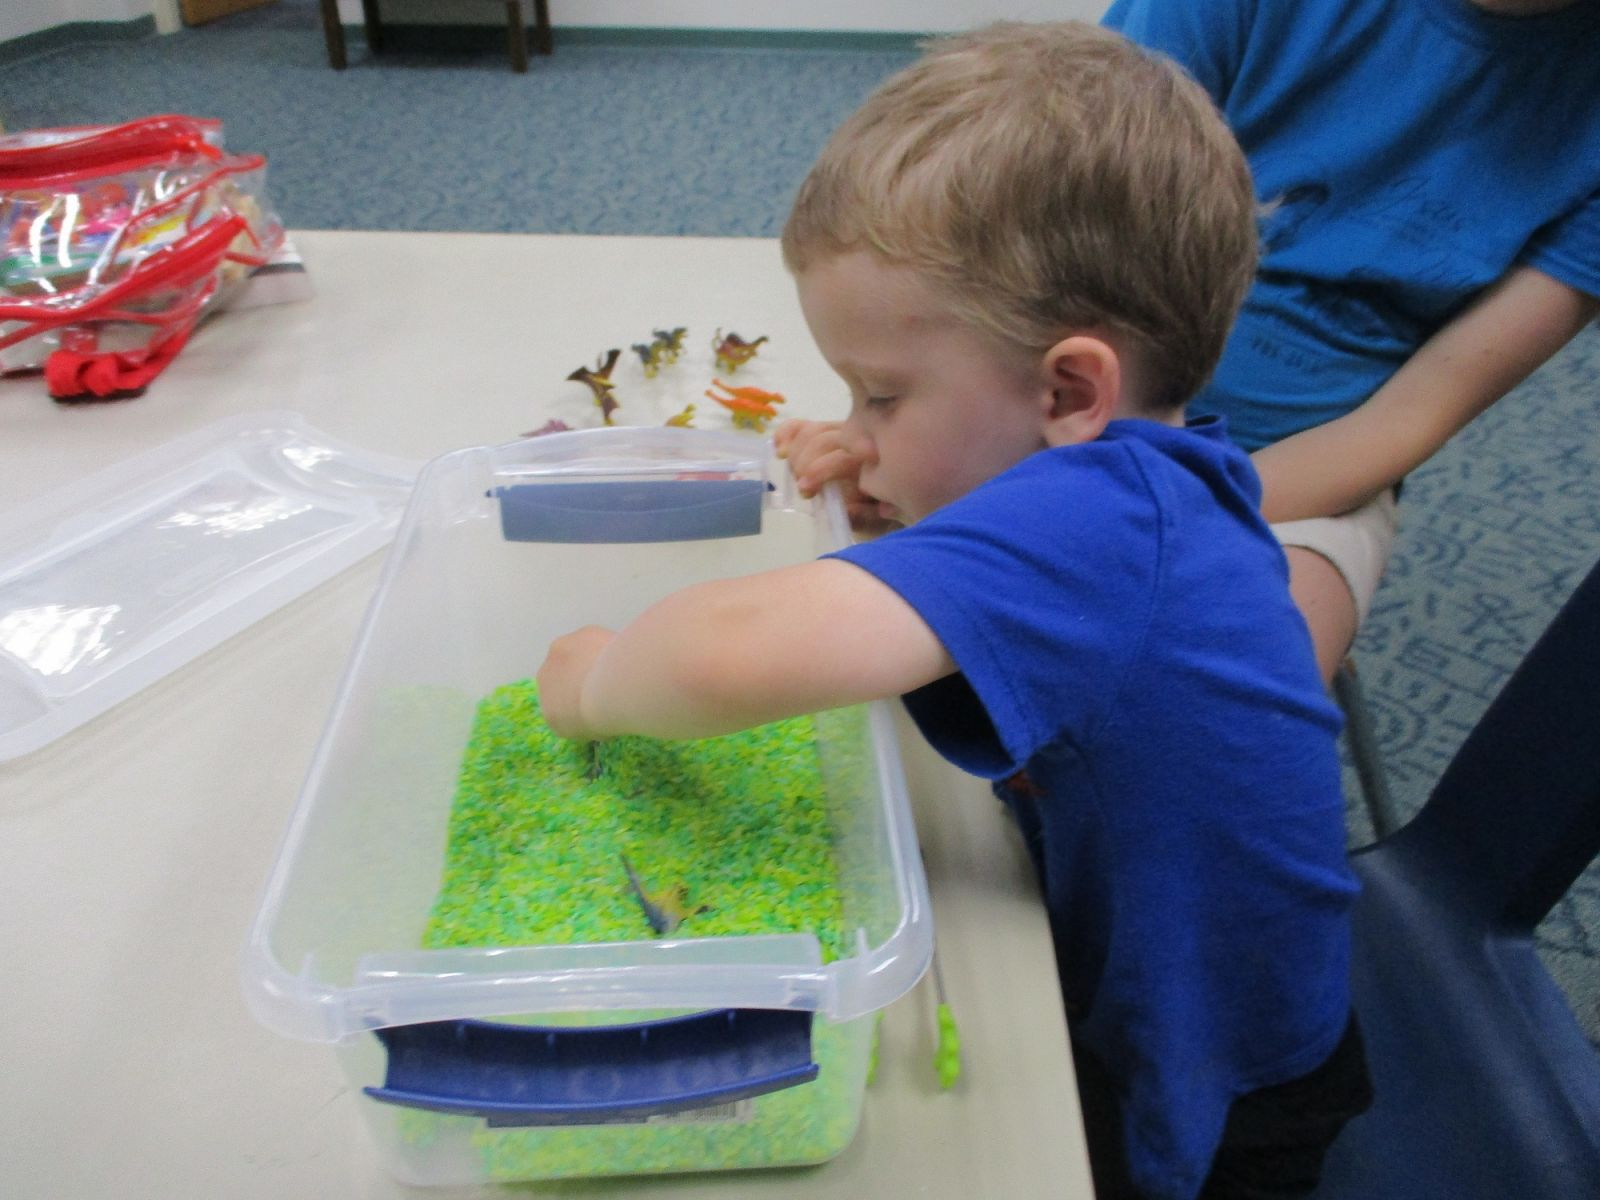 A boy digs for toys in a sensory bin of green rice.